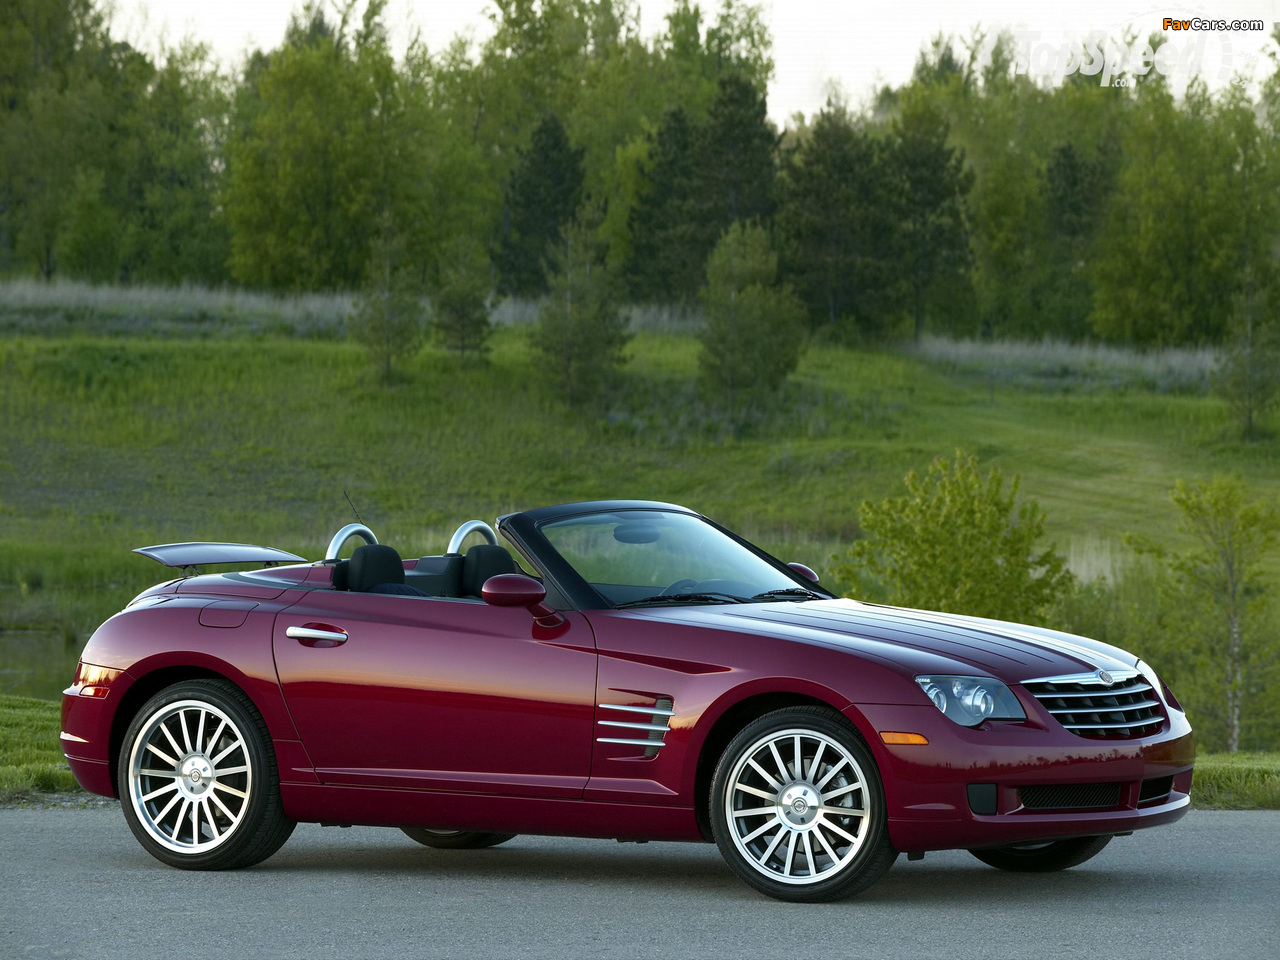 chrysler car pictures with Chrysler Crossfire Roadster 2007 08 Pictures 25911 1280x960 on Chrysler Firepower Concept 8 also Index besides 9338706514 besides Forza Motorsport 6 La Voiture De Fallout 4 Gratuite 103574 moreover Peugeot 402.